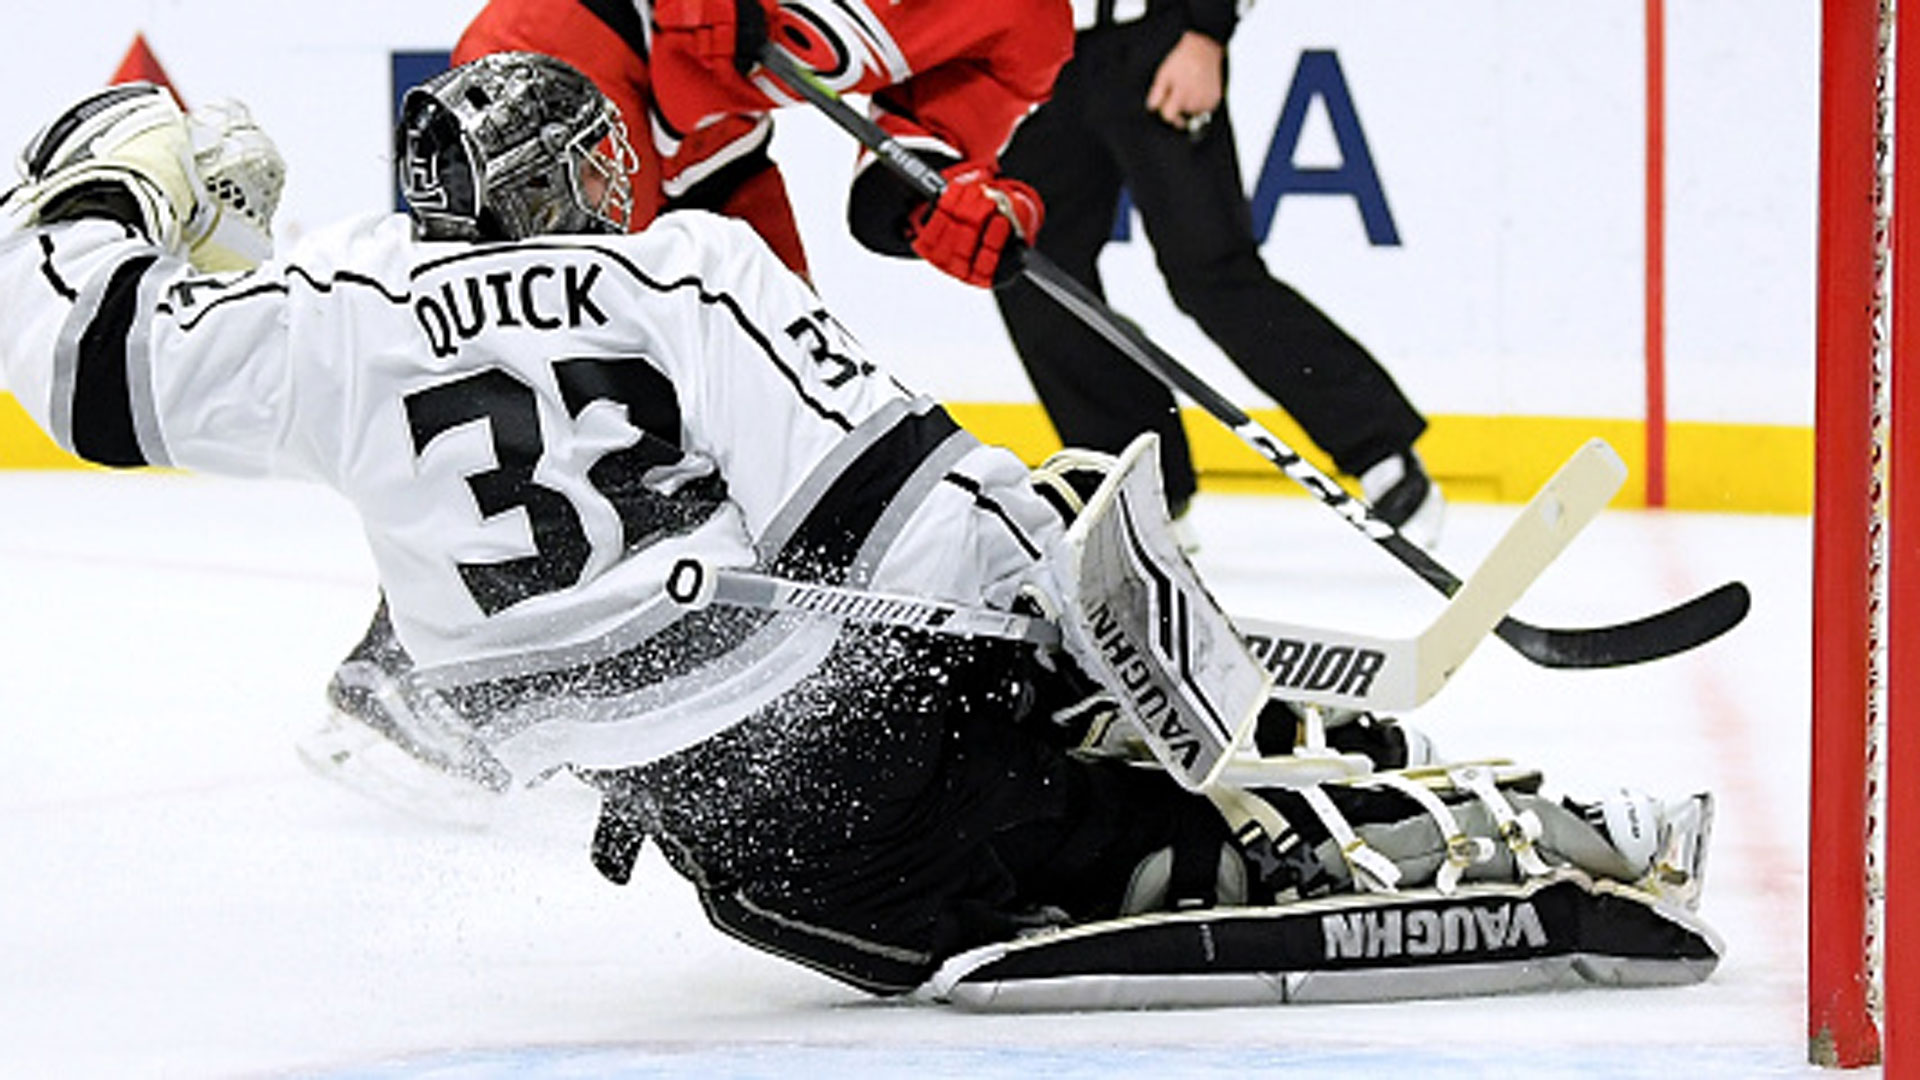 Quick Gets 50th Shutout In Kings Win Over Hurricanes